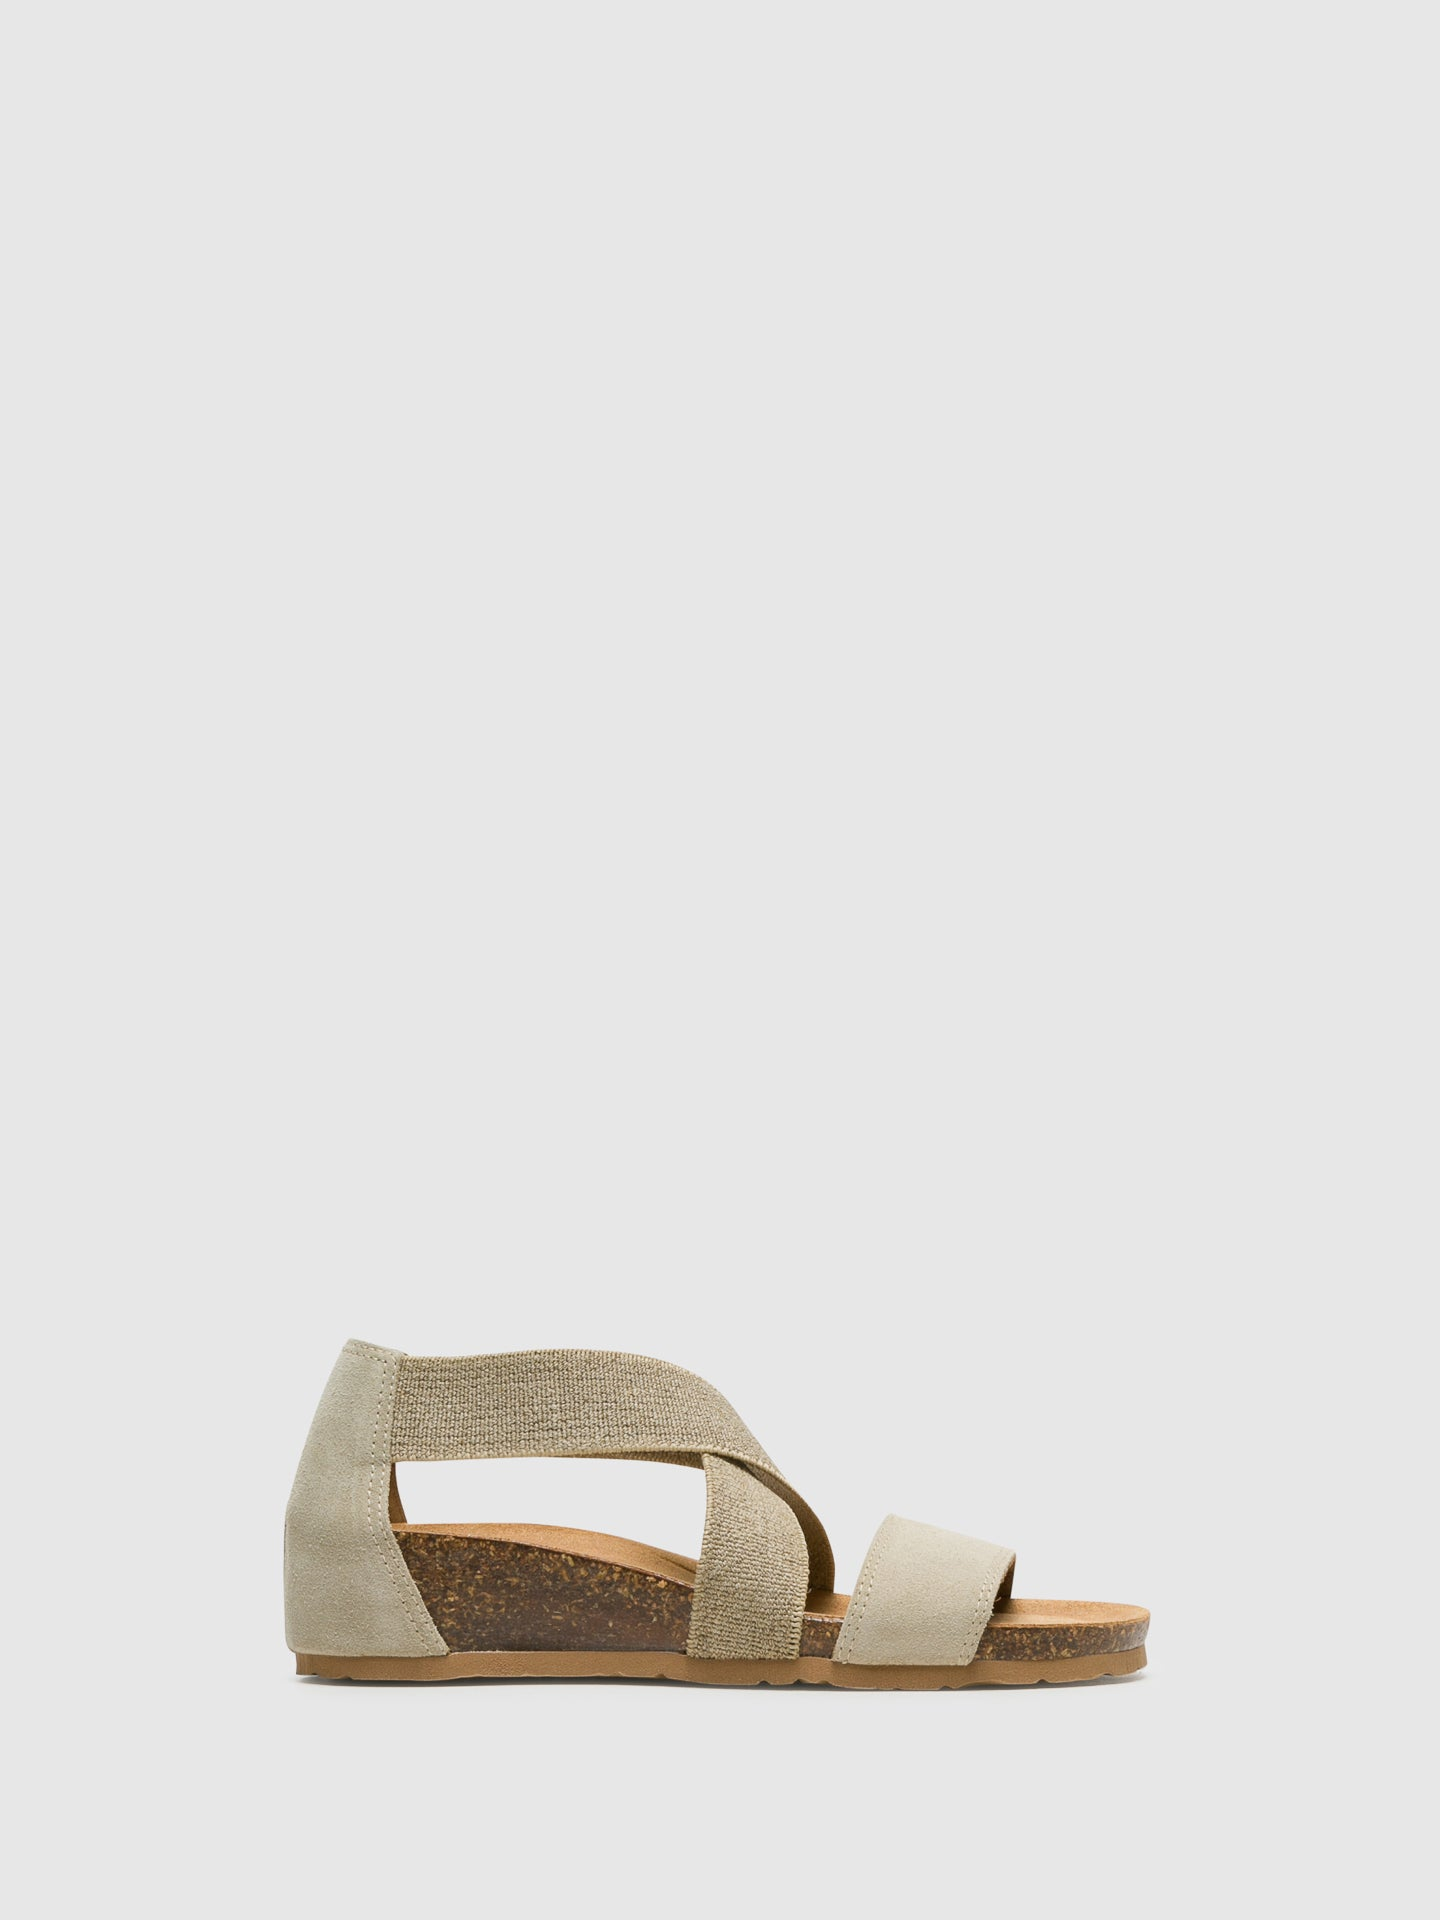 Bos&Co Beige Ankle Strap Sandals